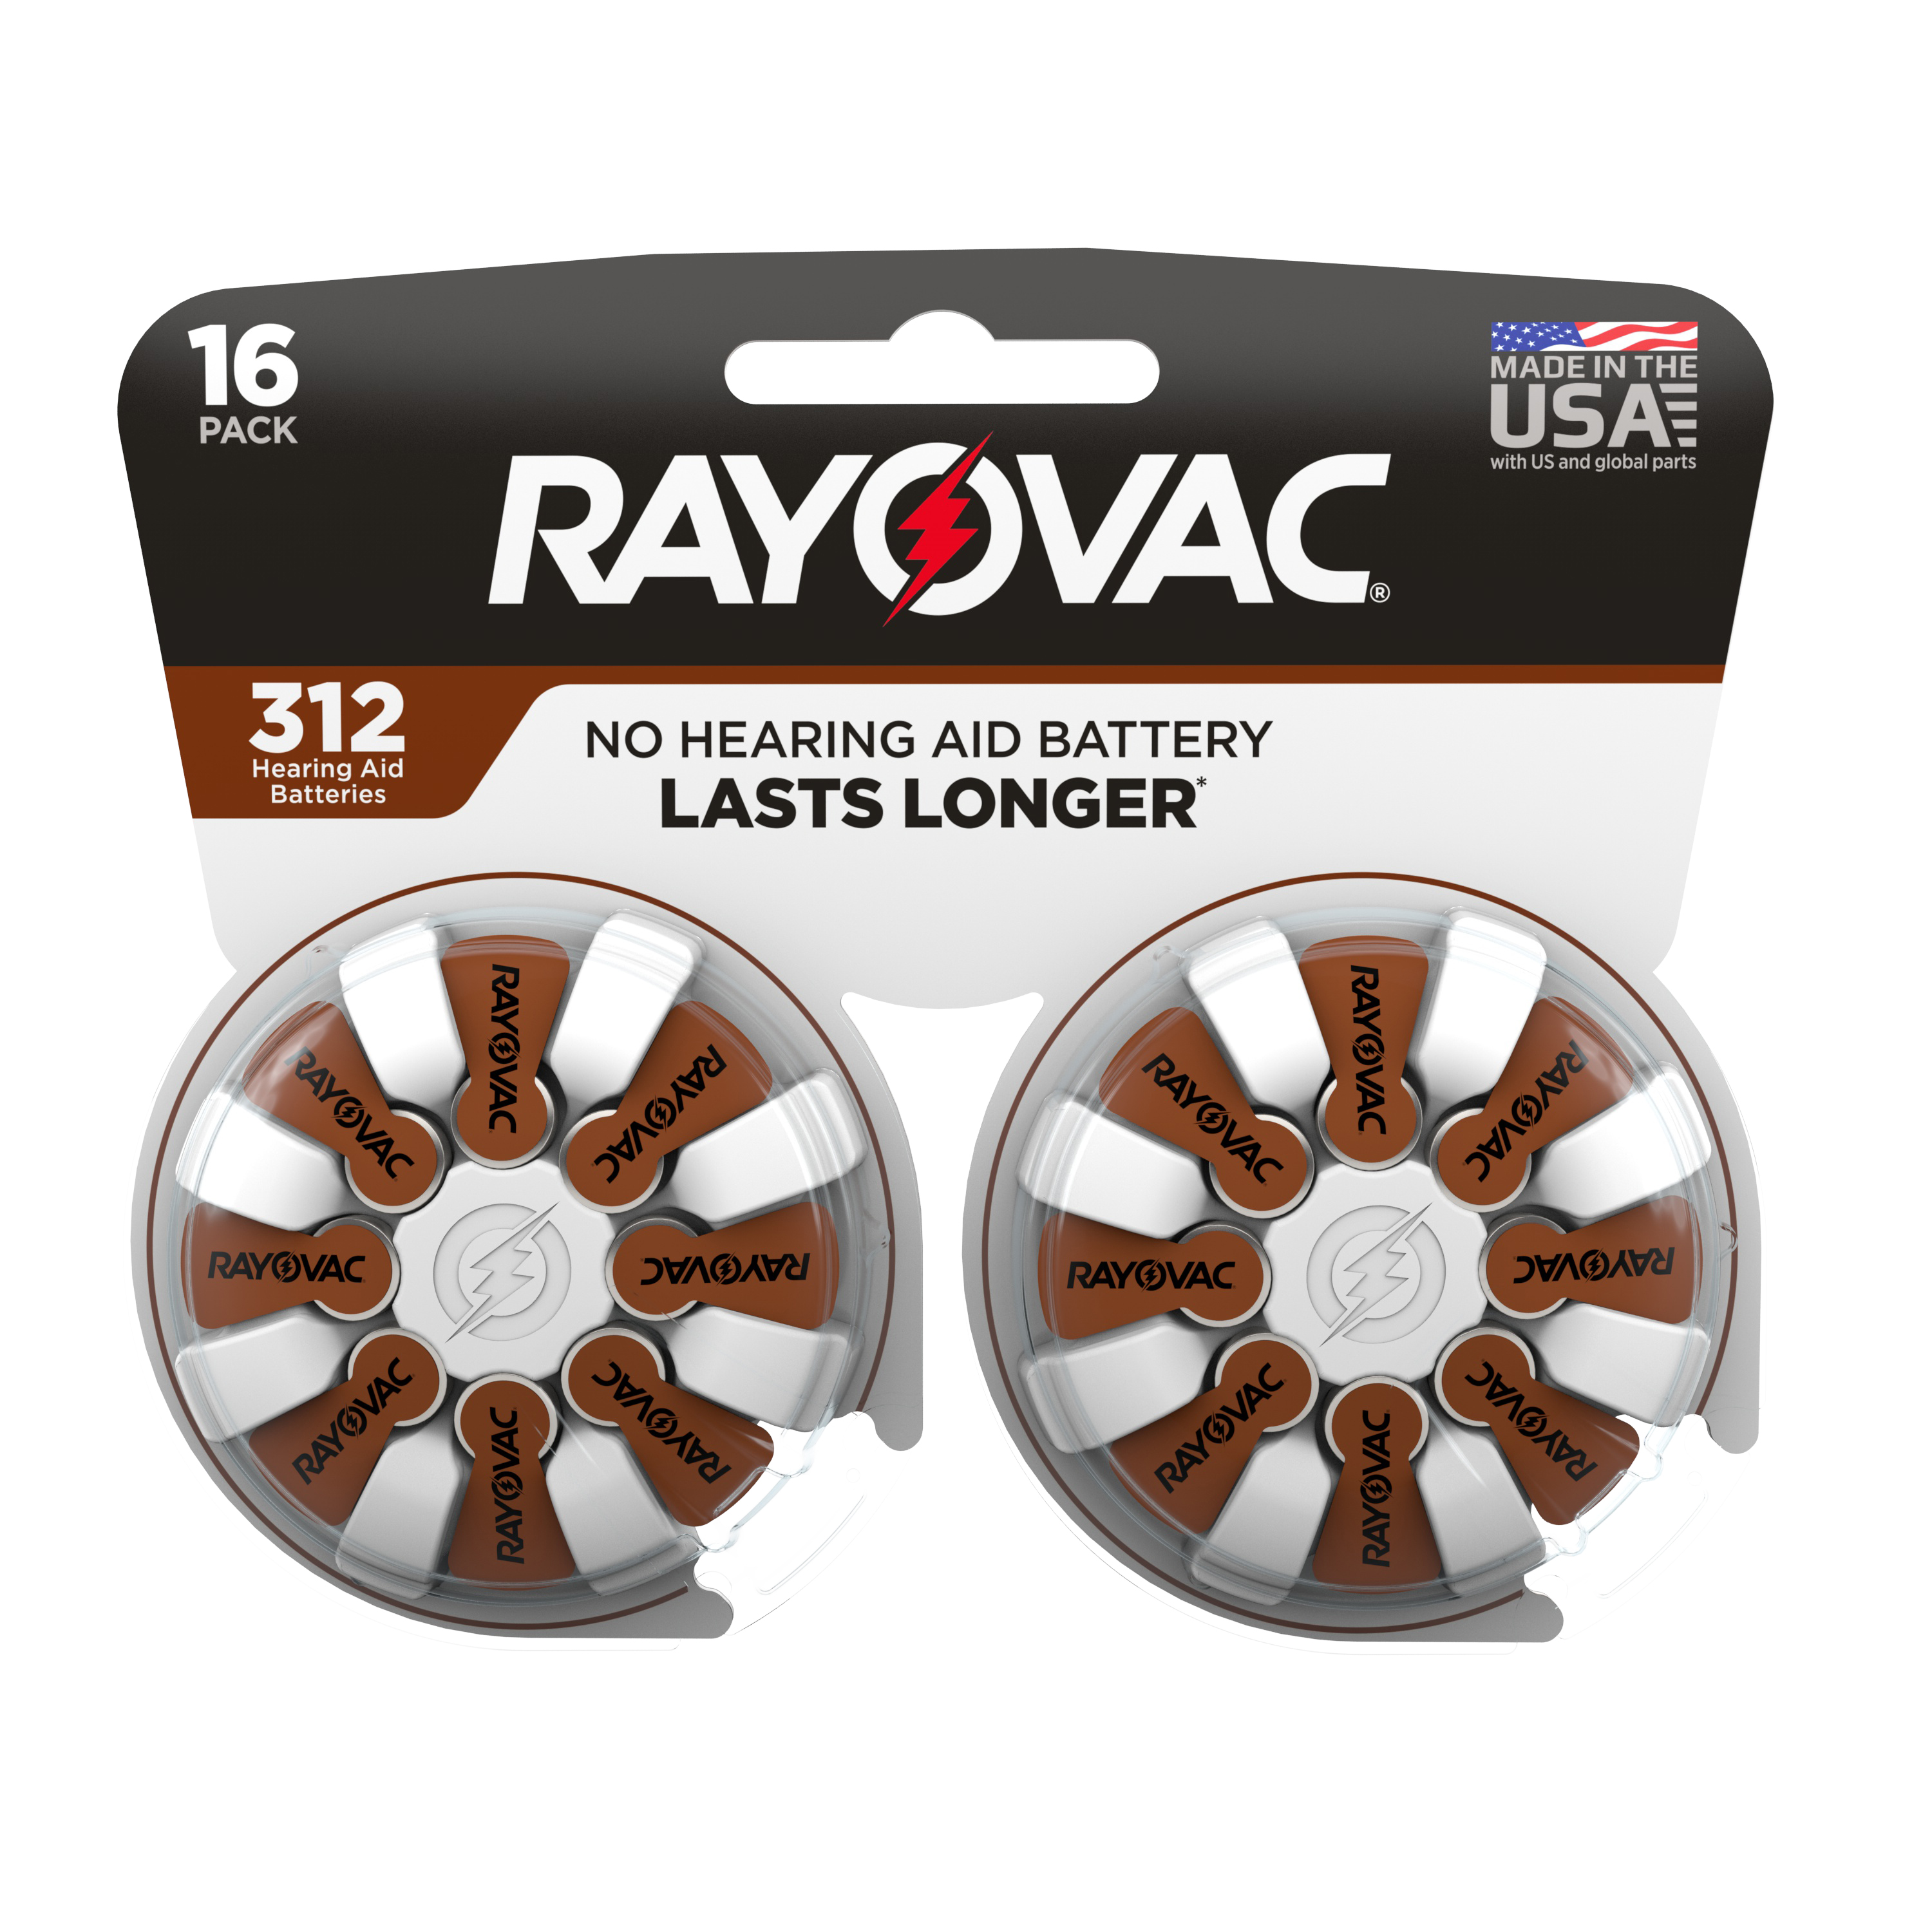 Rayovac Size 312 Hearing Aid Batteries, 16-Pack 312-16